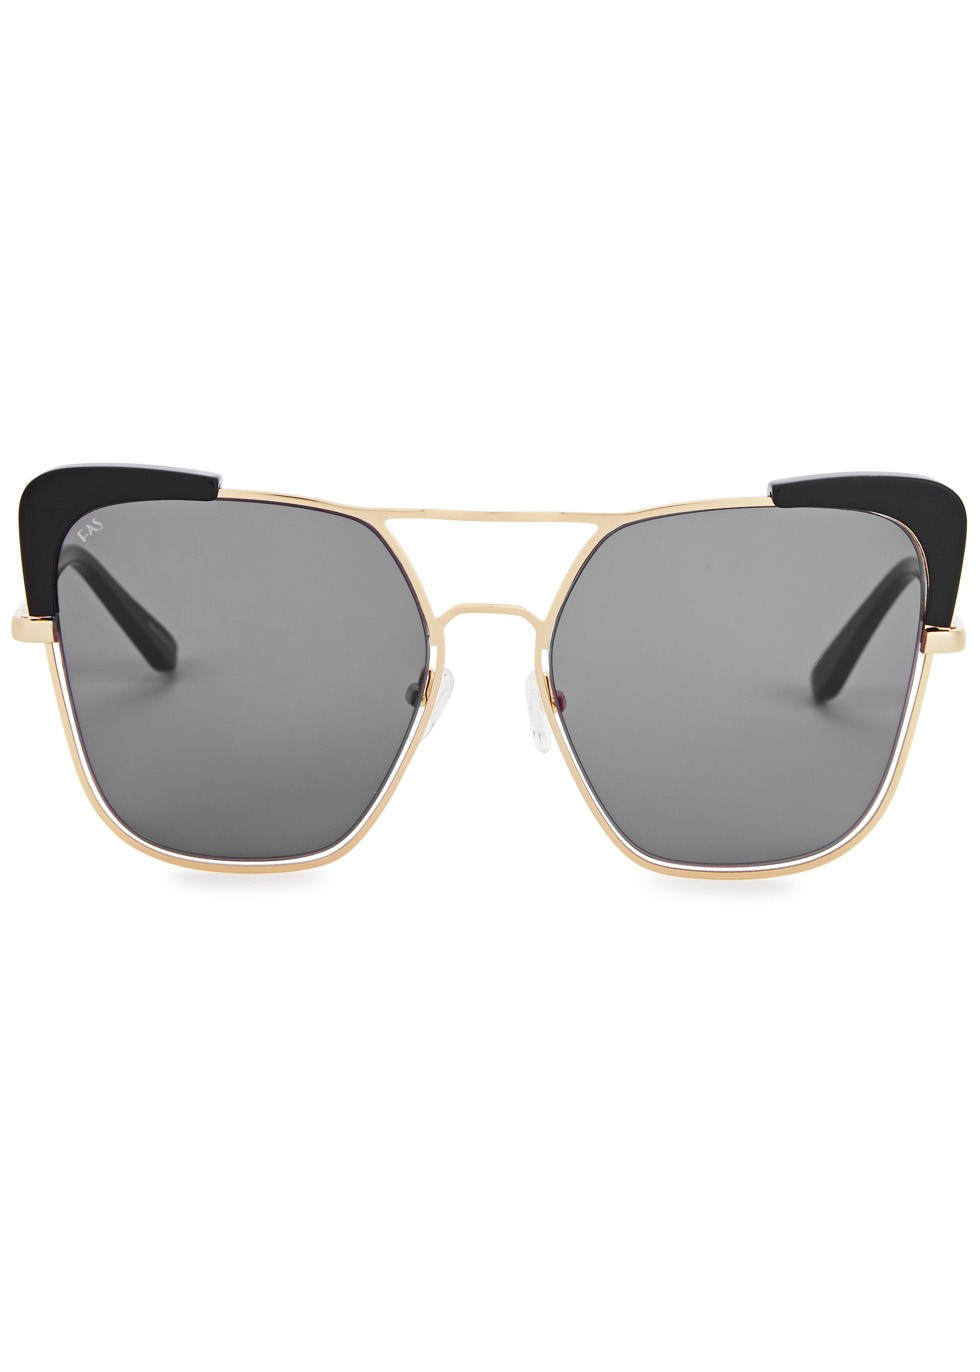 For Art's Sake Capri gold tone oversized sunglasses, £178